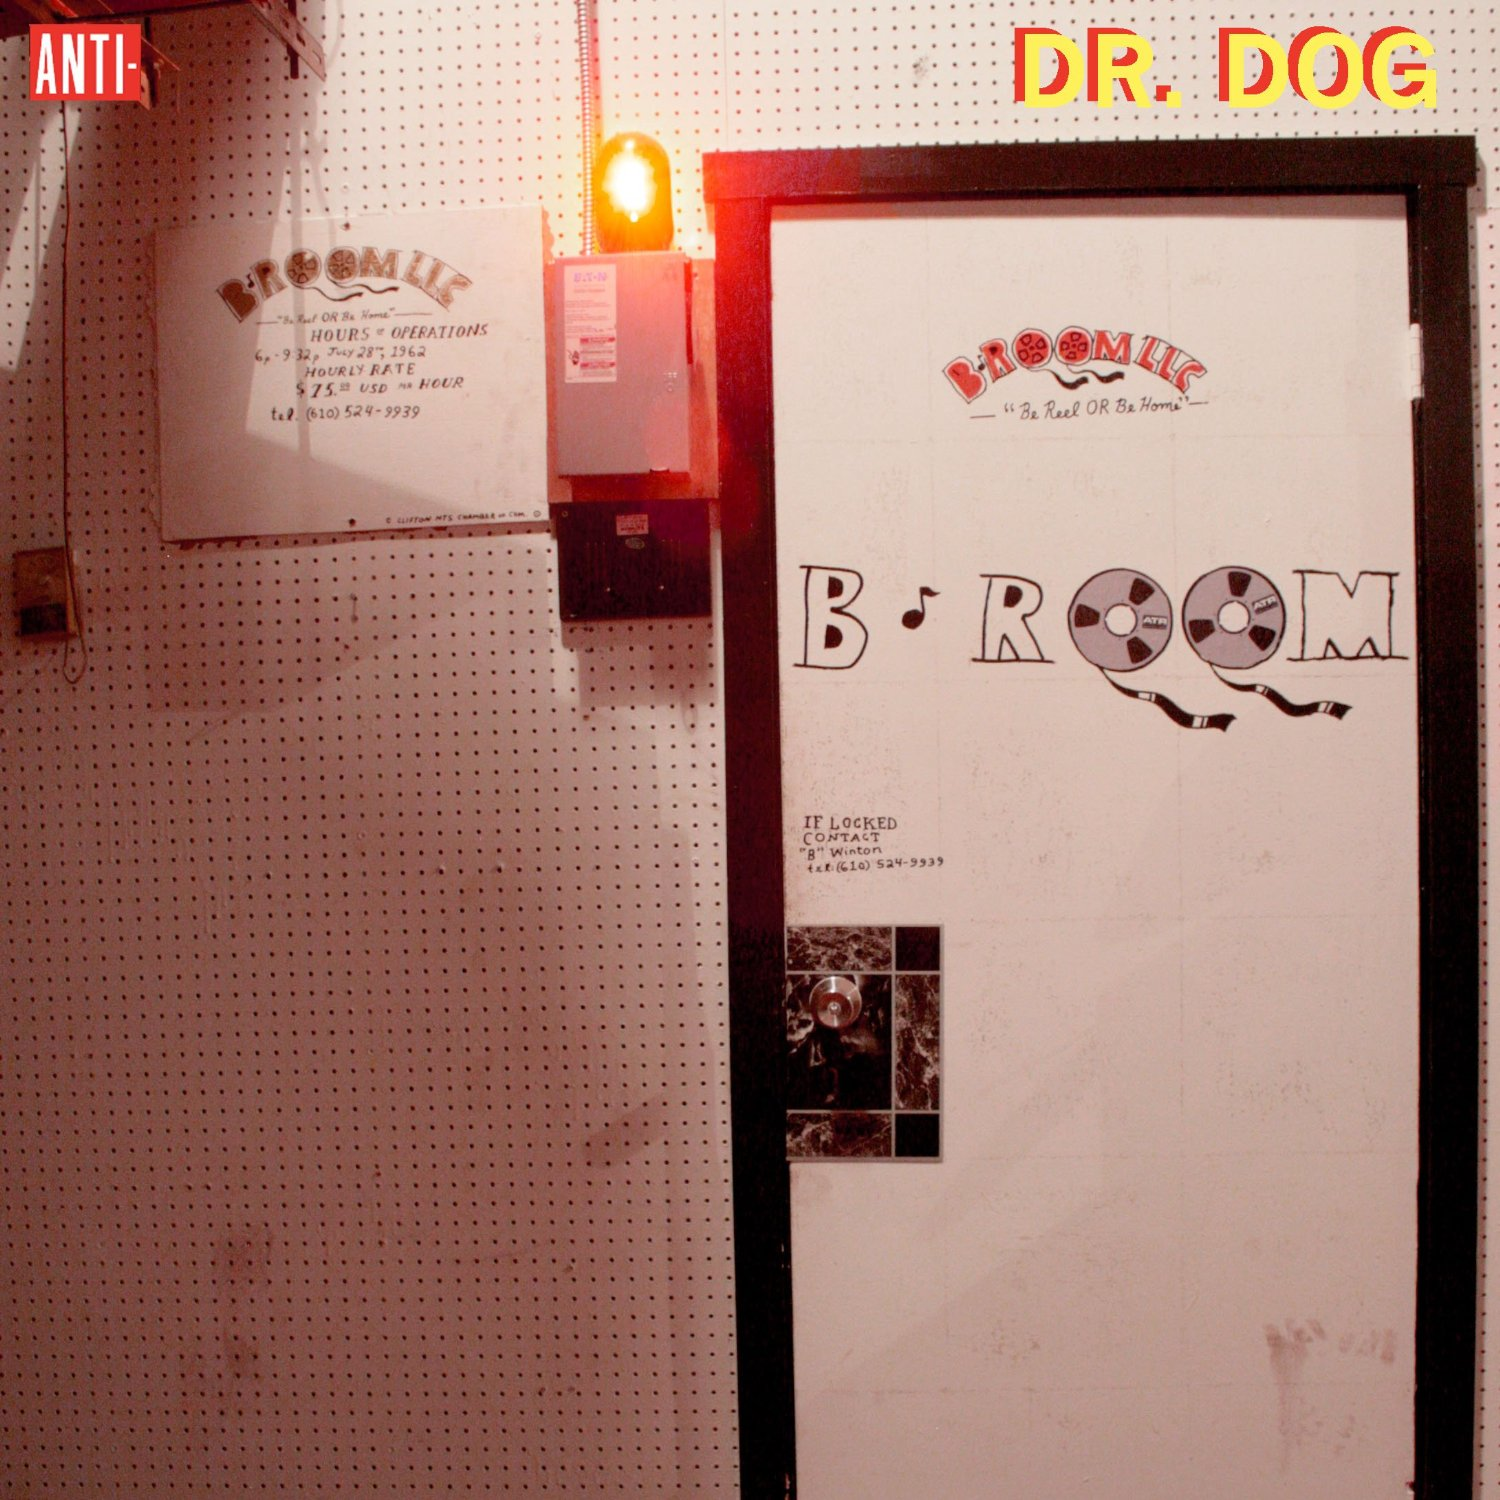 dr dog - b room 2013